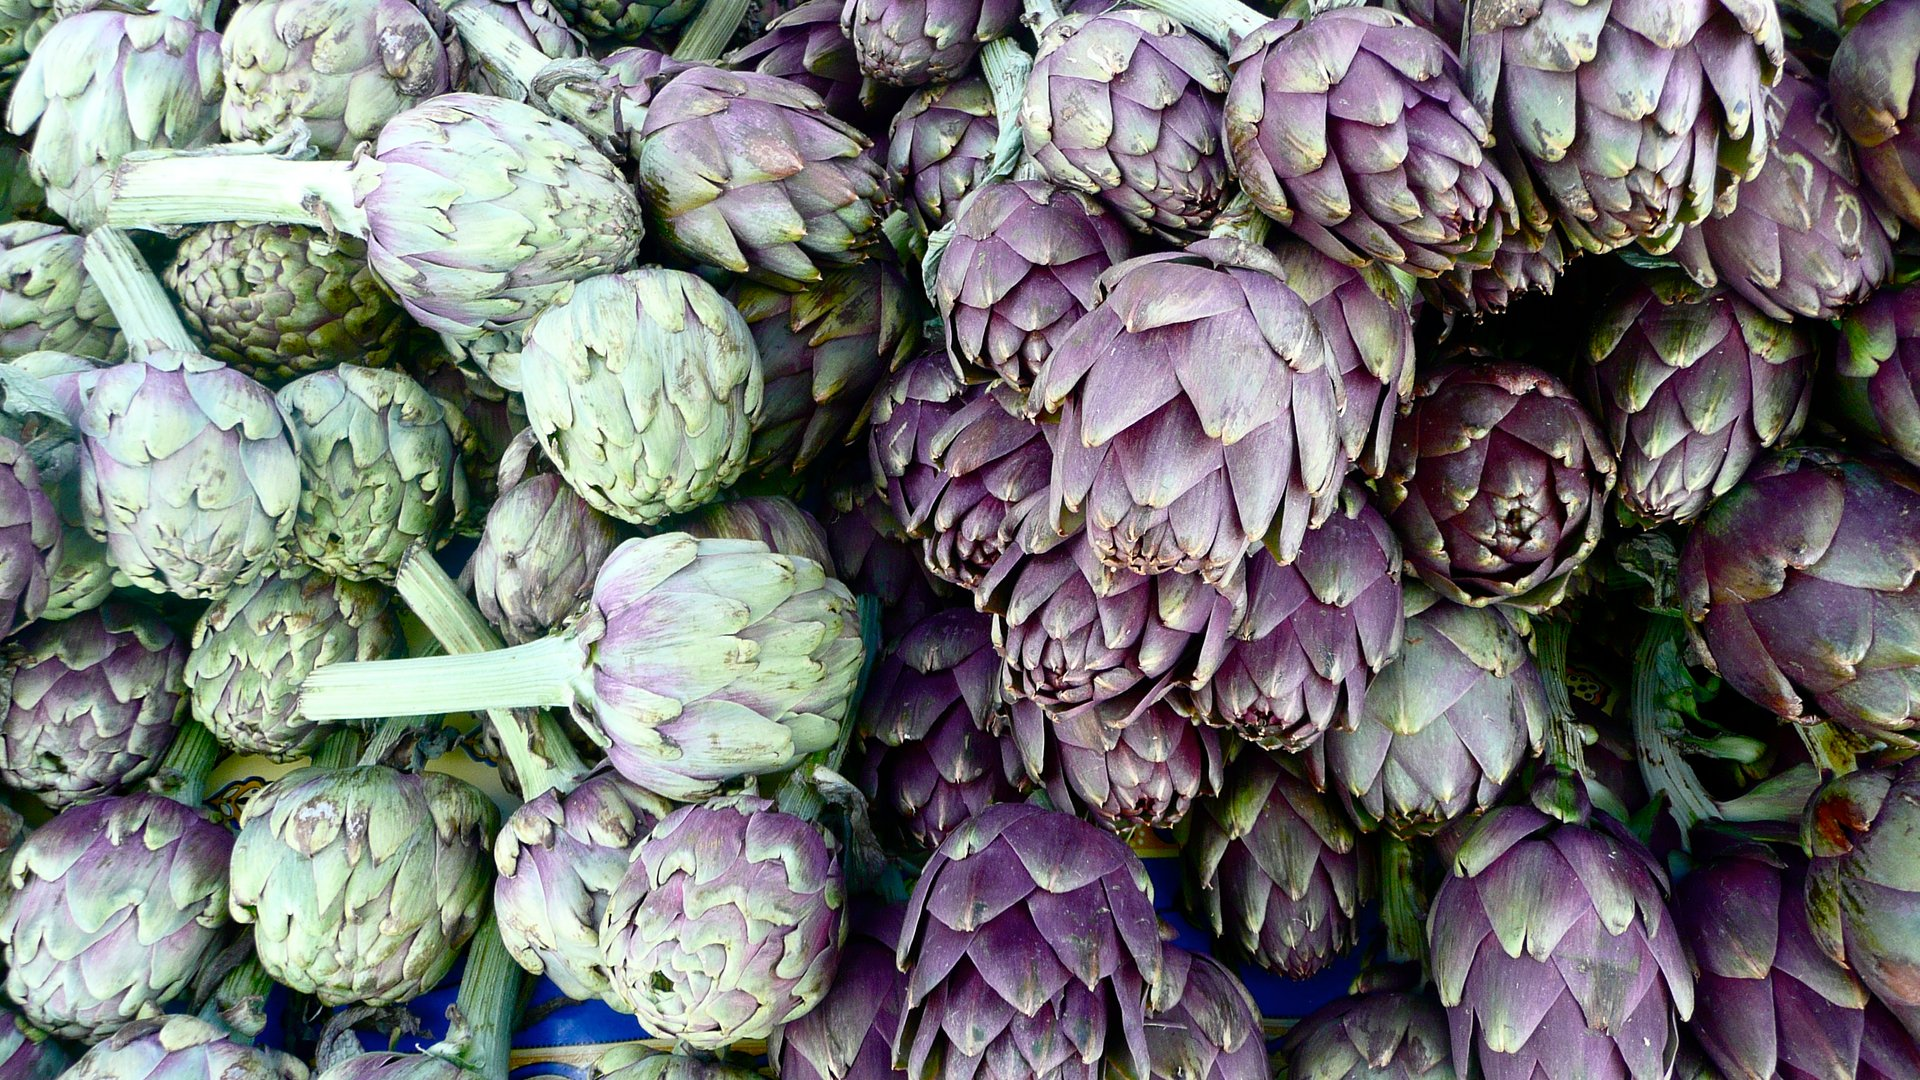 Artichokes in Amalfi Coast 2020 - Best Time